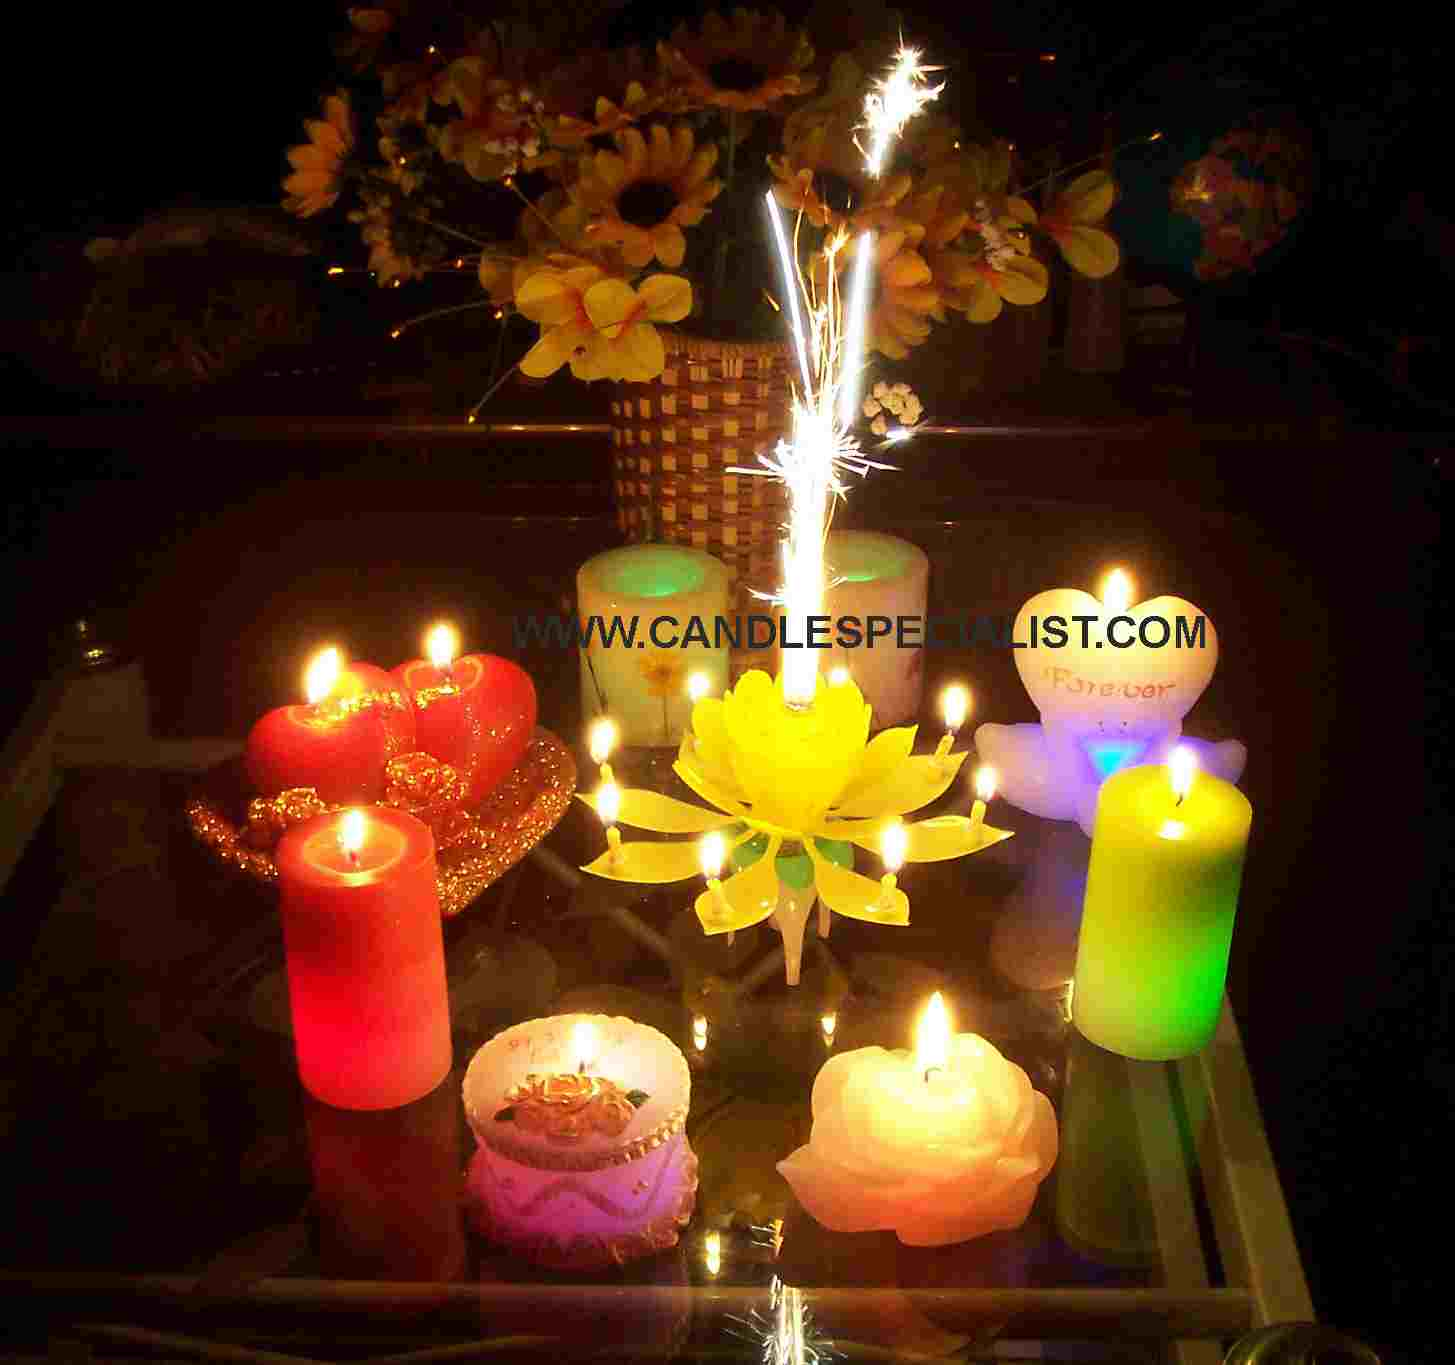 mừng ngày sinh mitngan 1275025756_fireworks_music_birthday_candle_magic_flower_cake_candle1